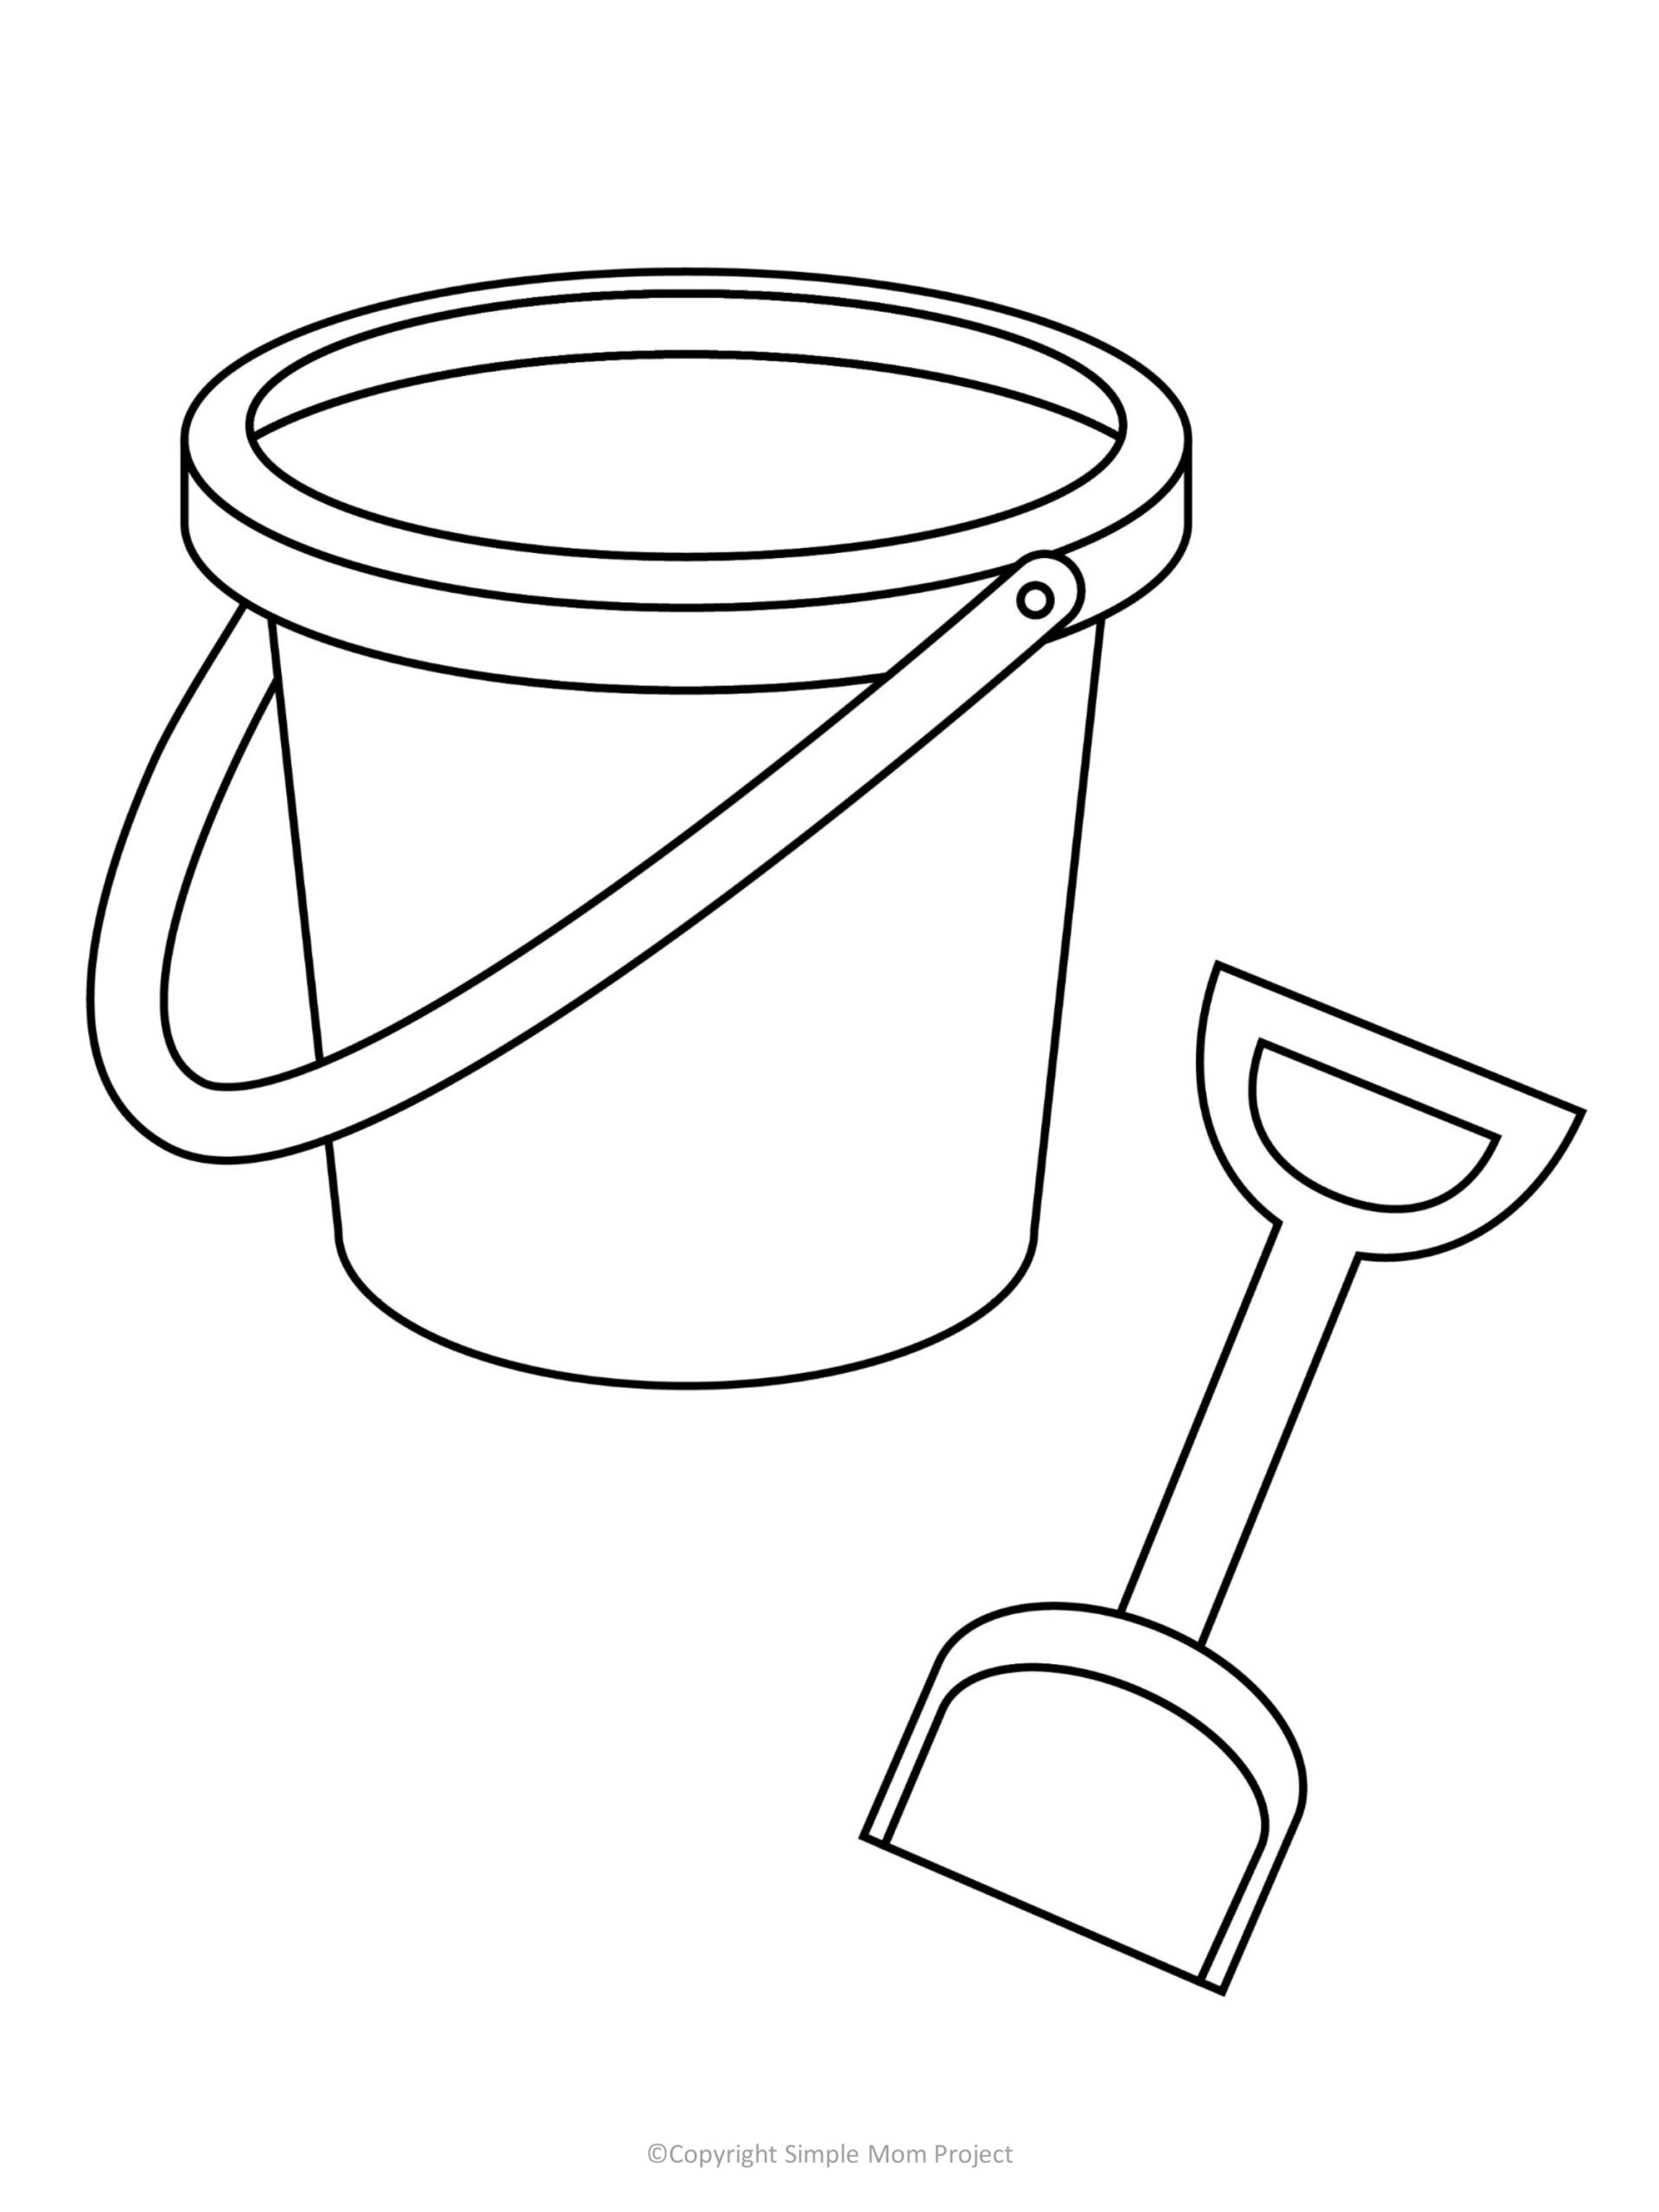 printable sand bucket and shovel template for preschoolers, toddlers and summer crafts